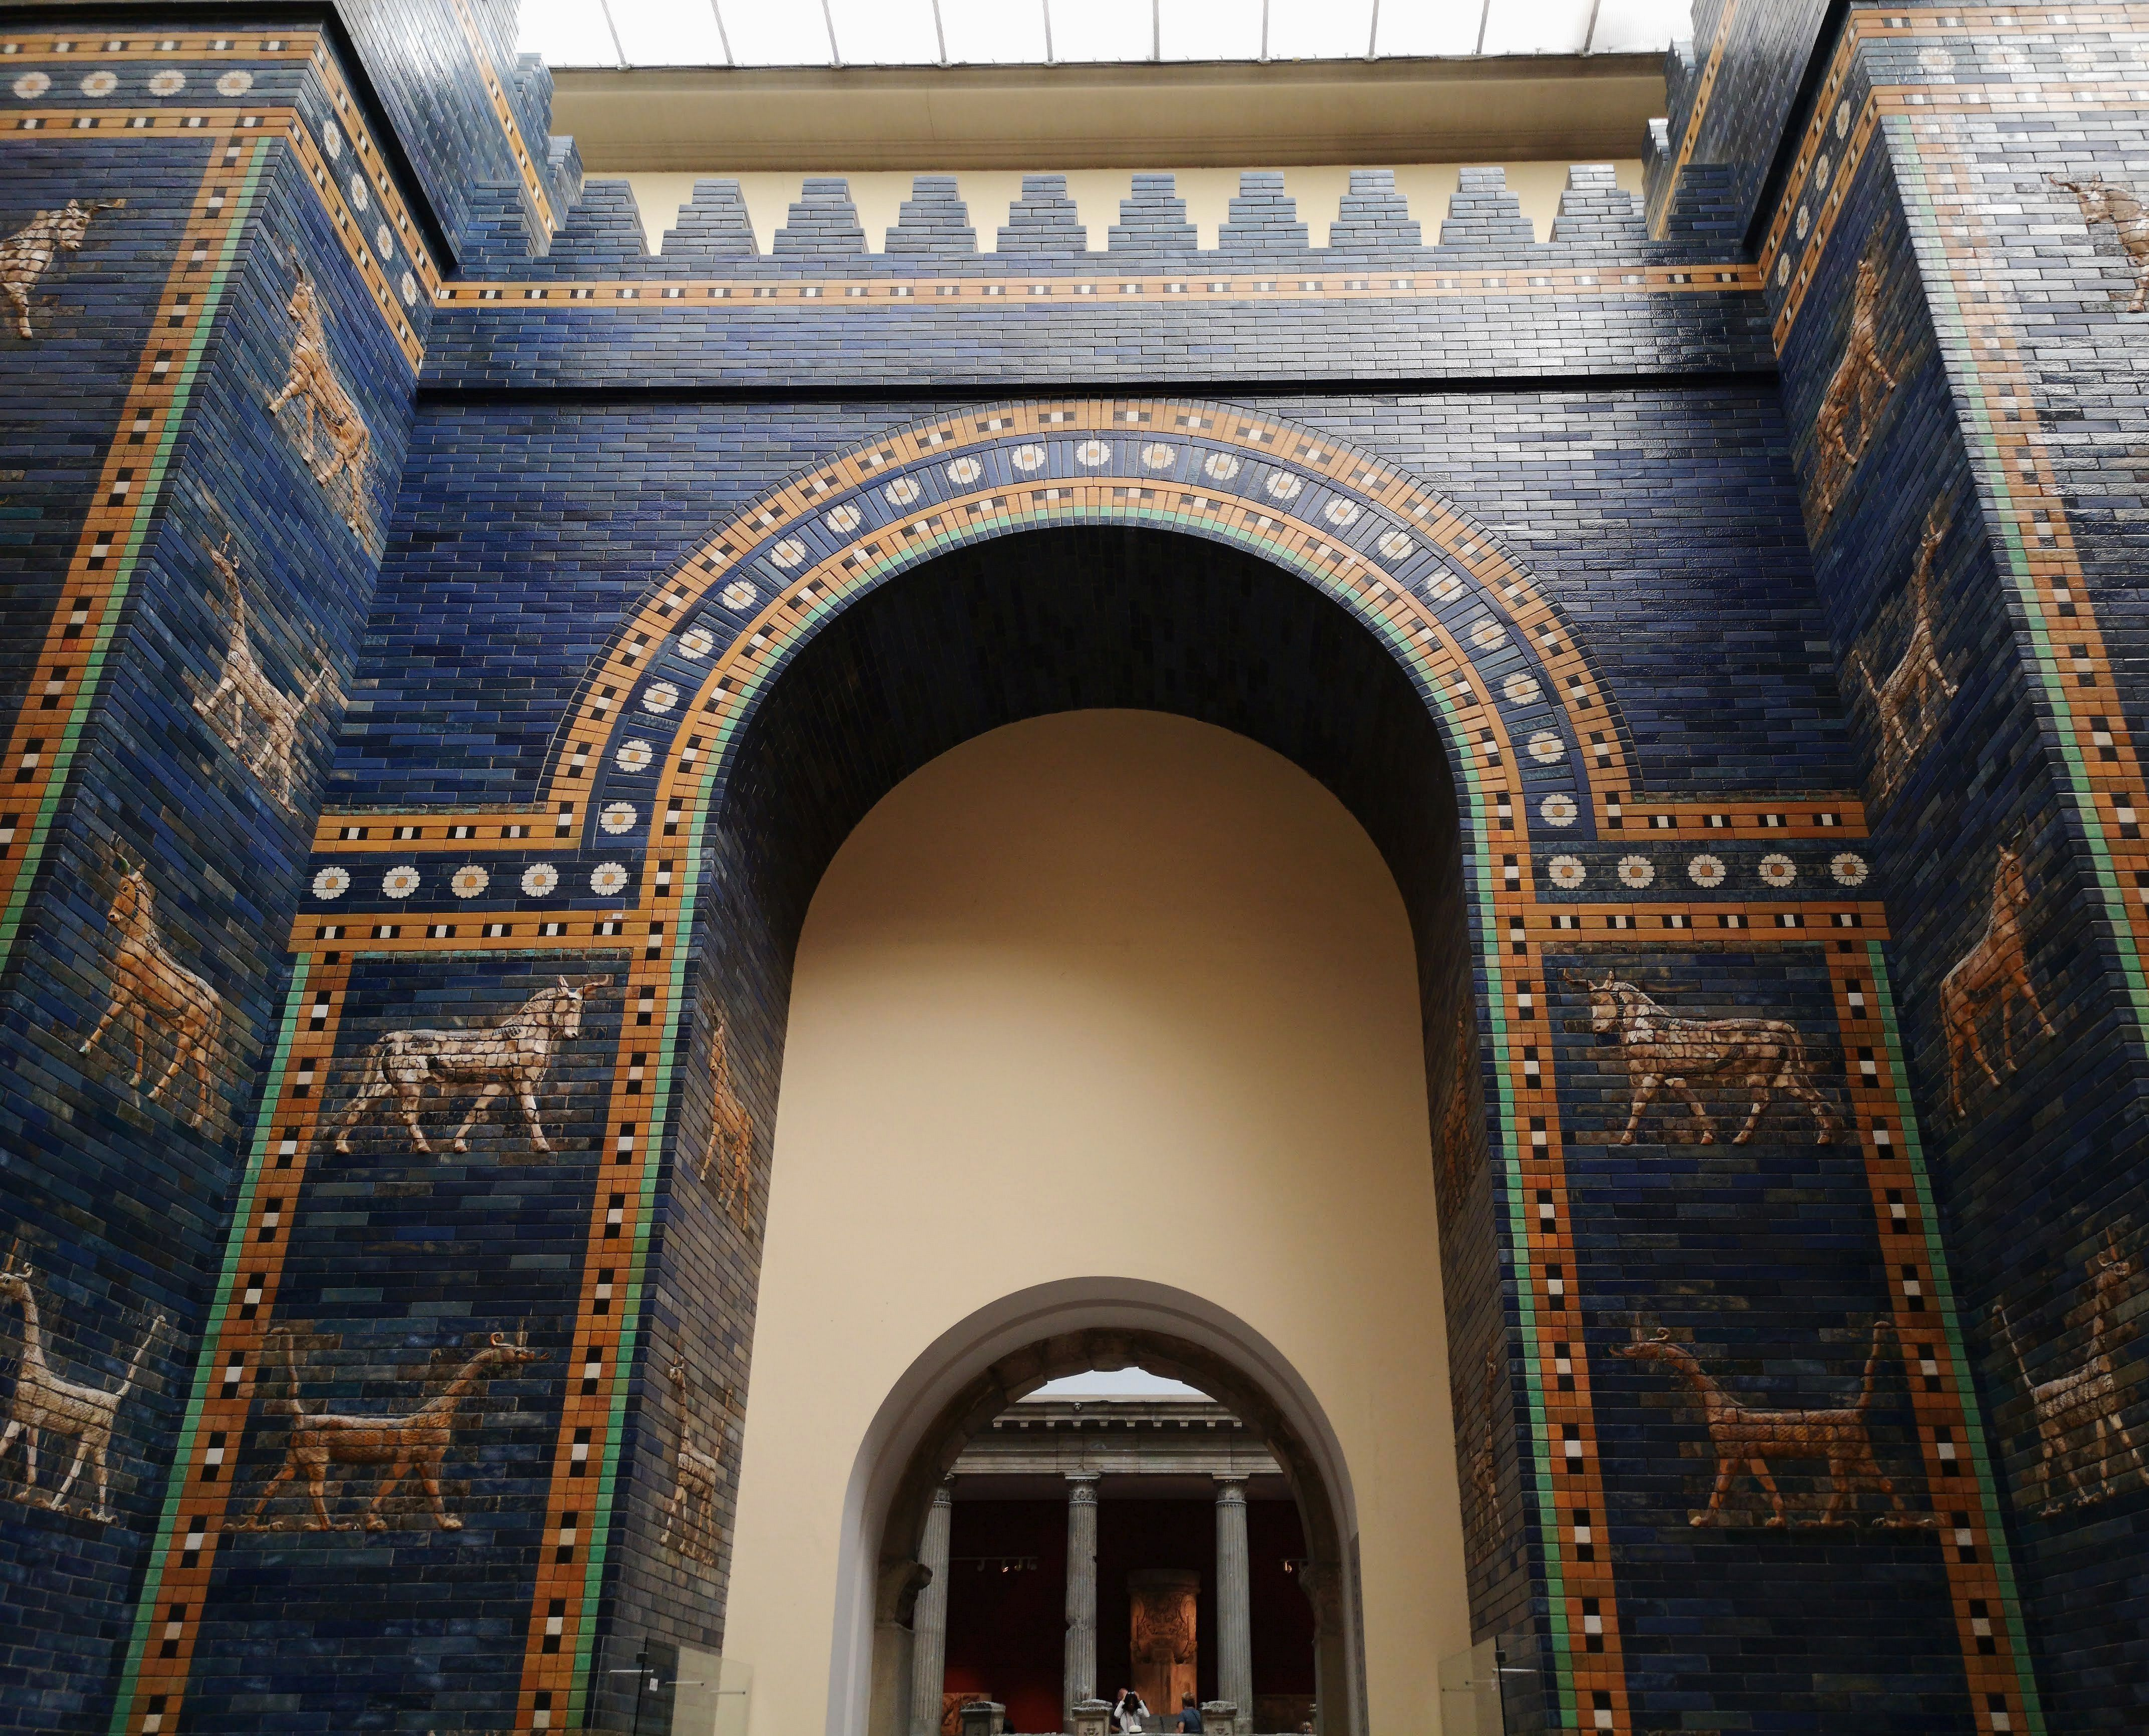 Ishtar Gate The Eighth Gate To The Inner City Of Babylon Constructed In About 575 Bce By Order Of King Nebuchadnezzar Ii To In 2020 Pergamon Museum Pergamon Babylon